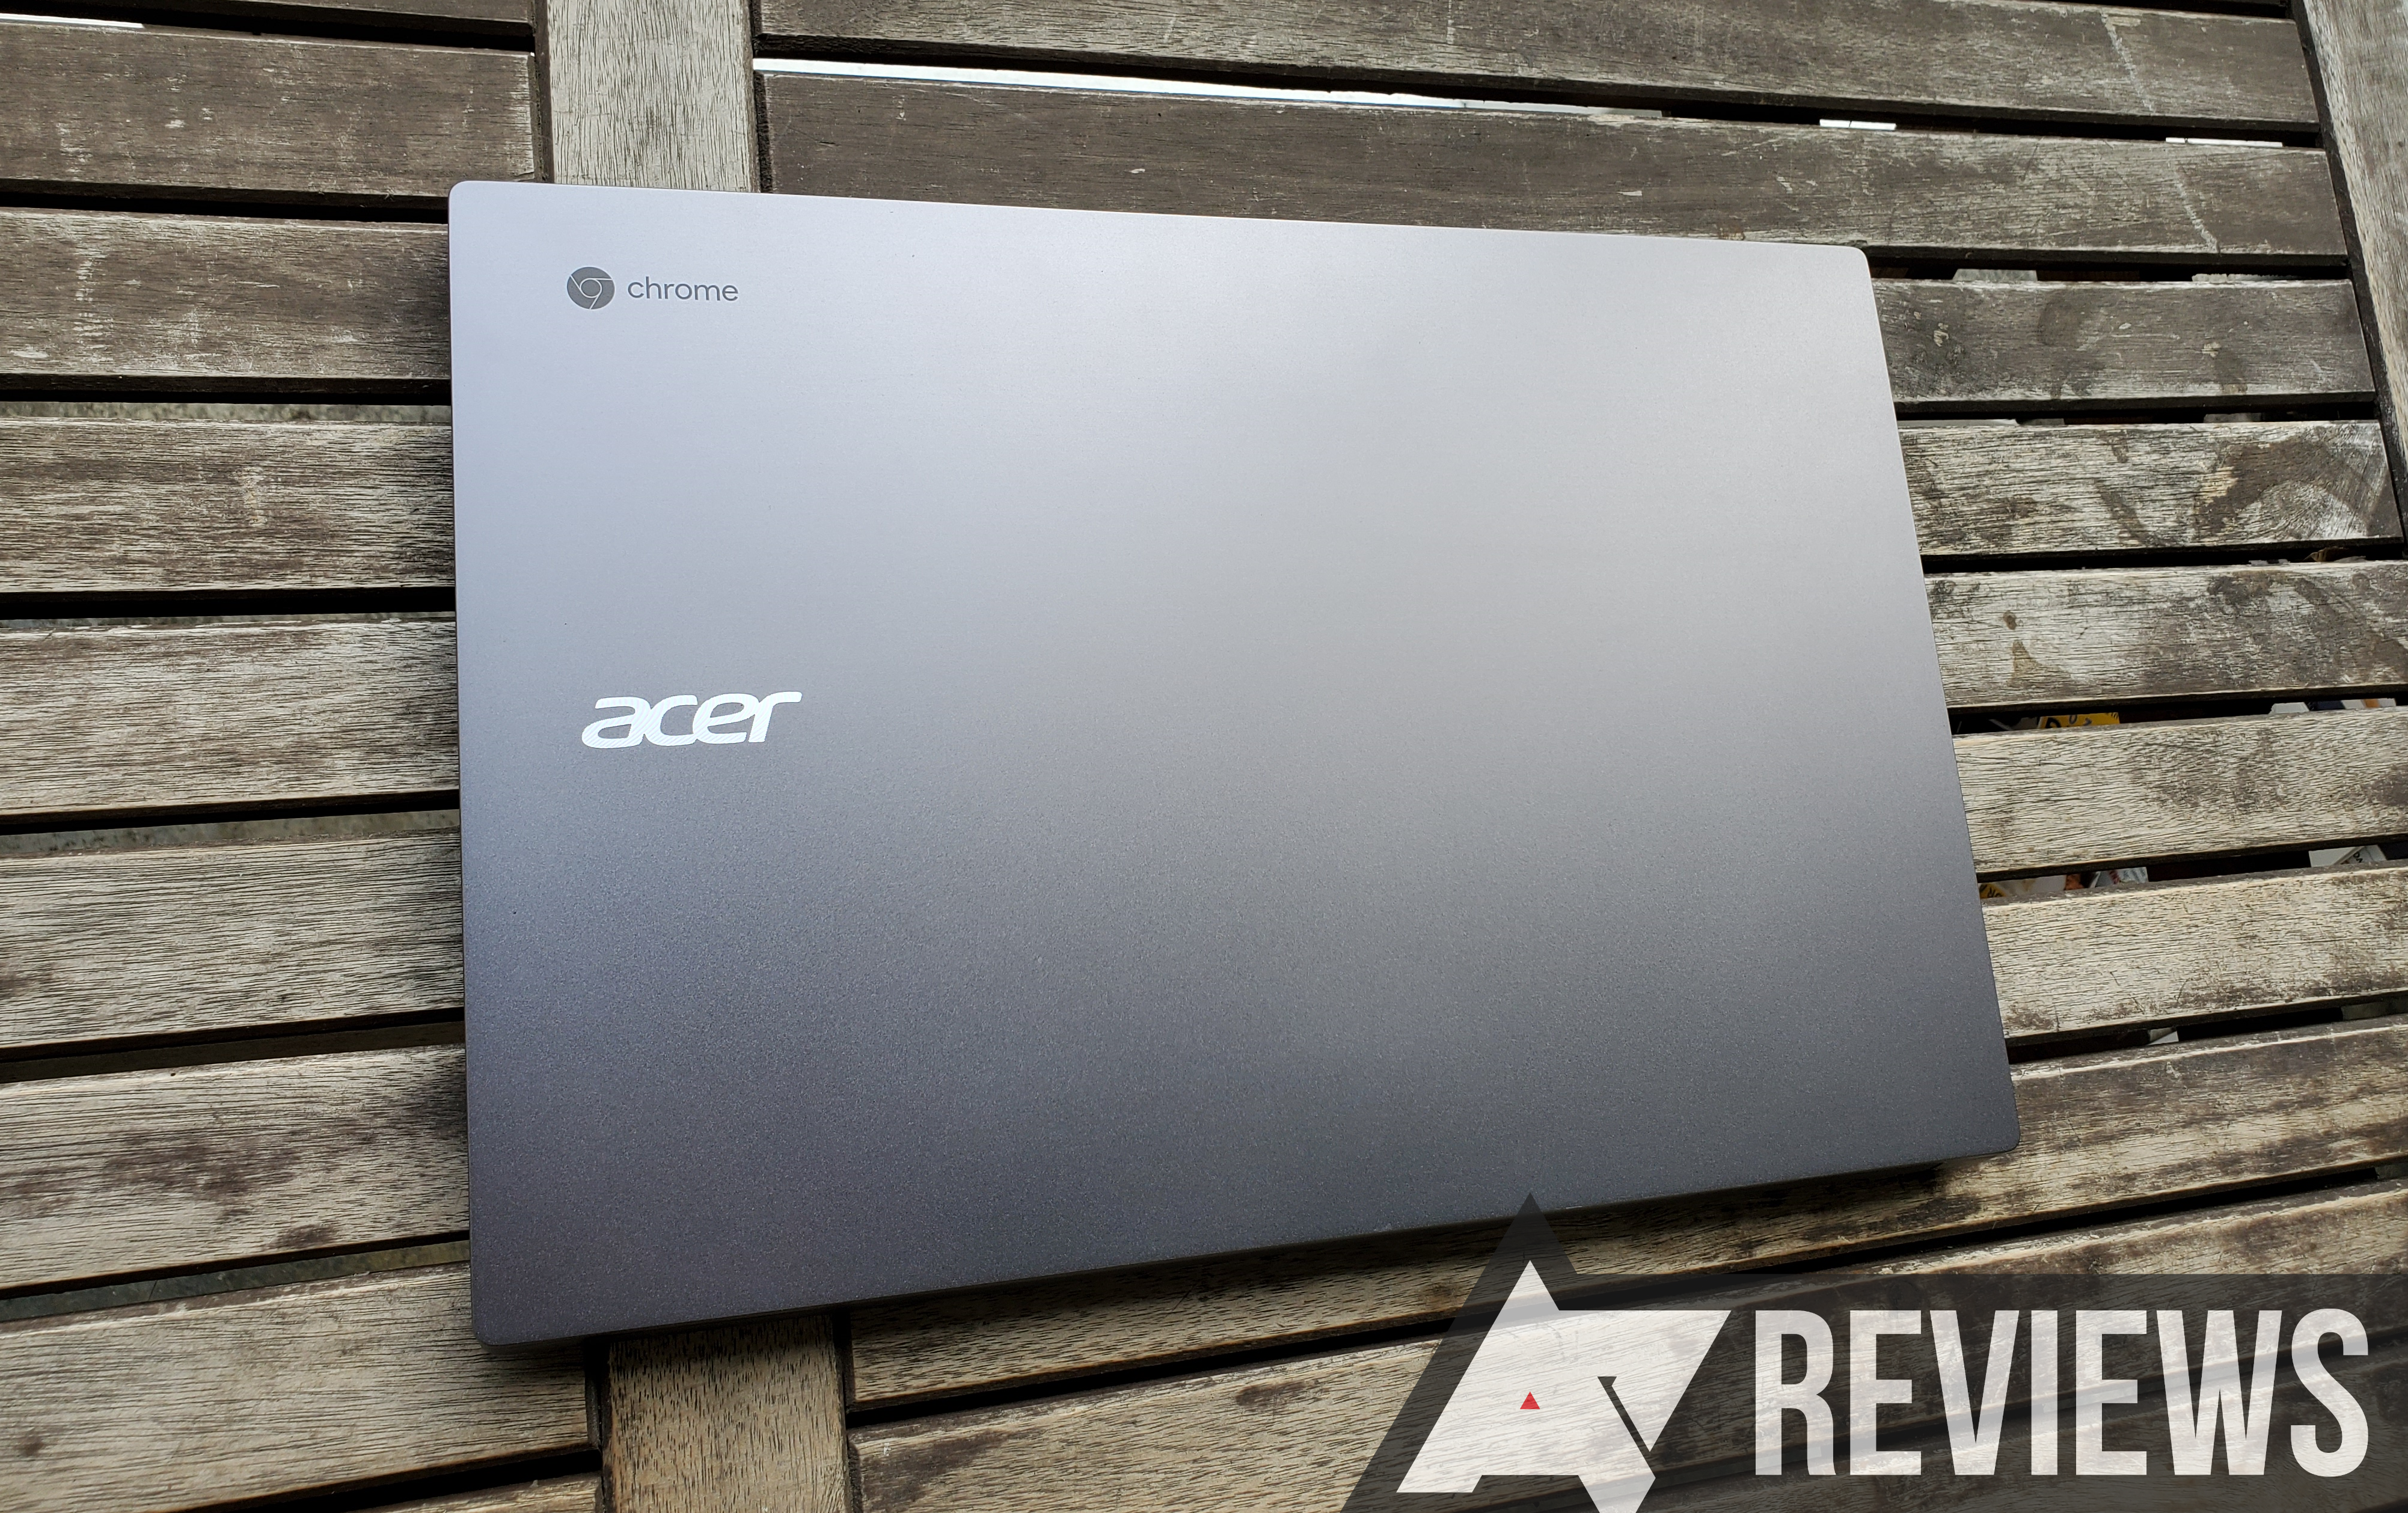 Acer Chromebook 715 review: A big and fast premium laptop marred by an underwhelming display